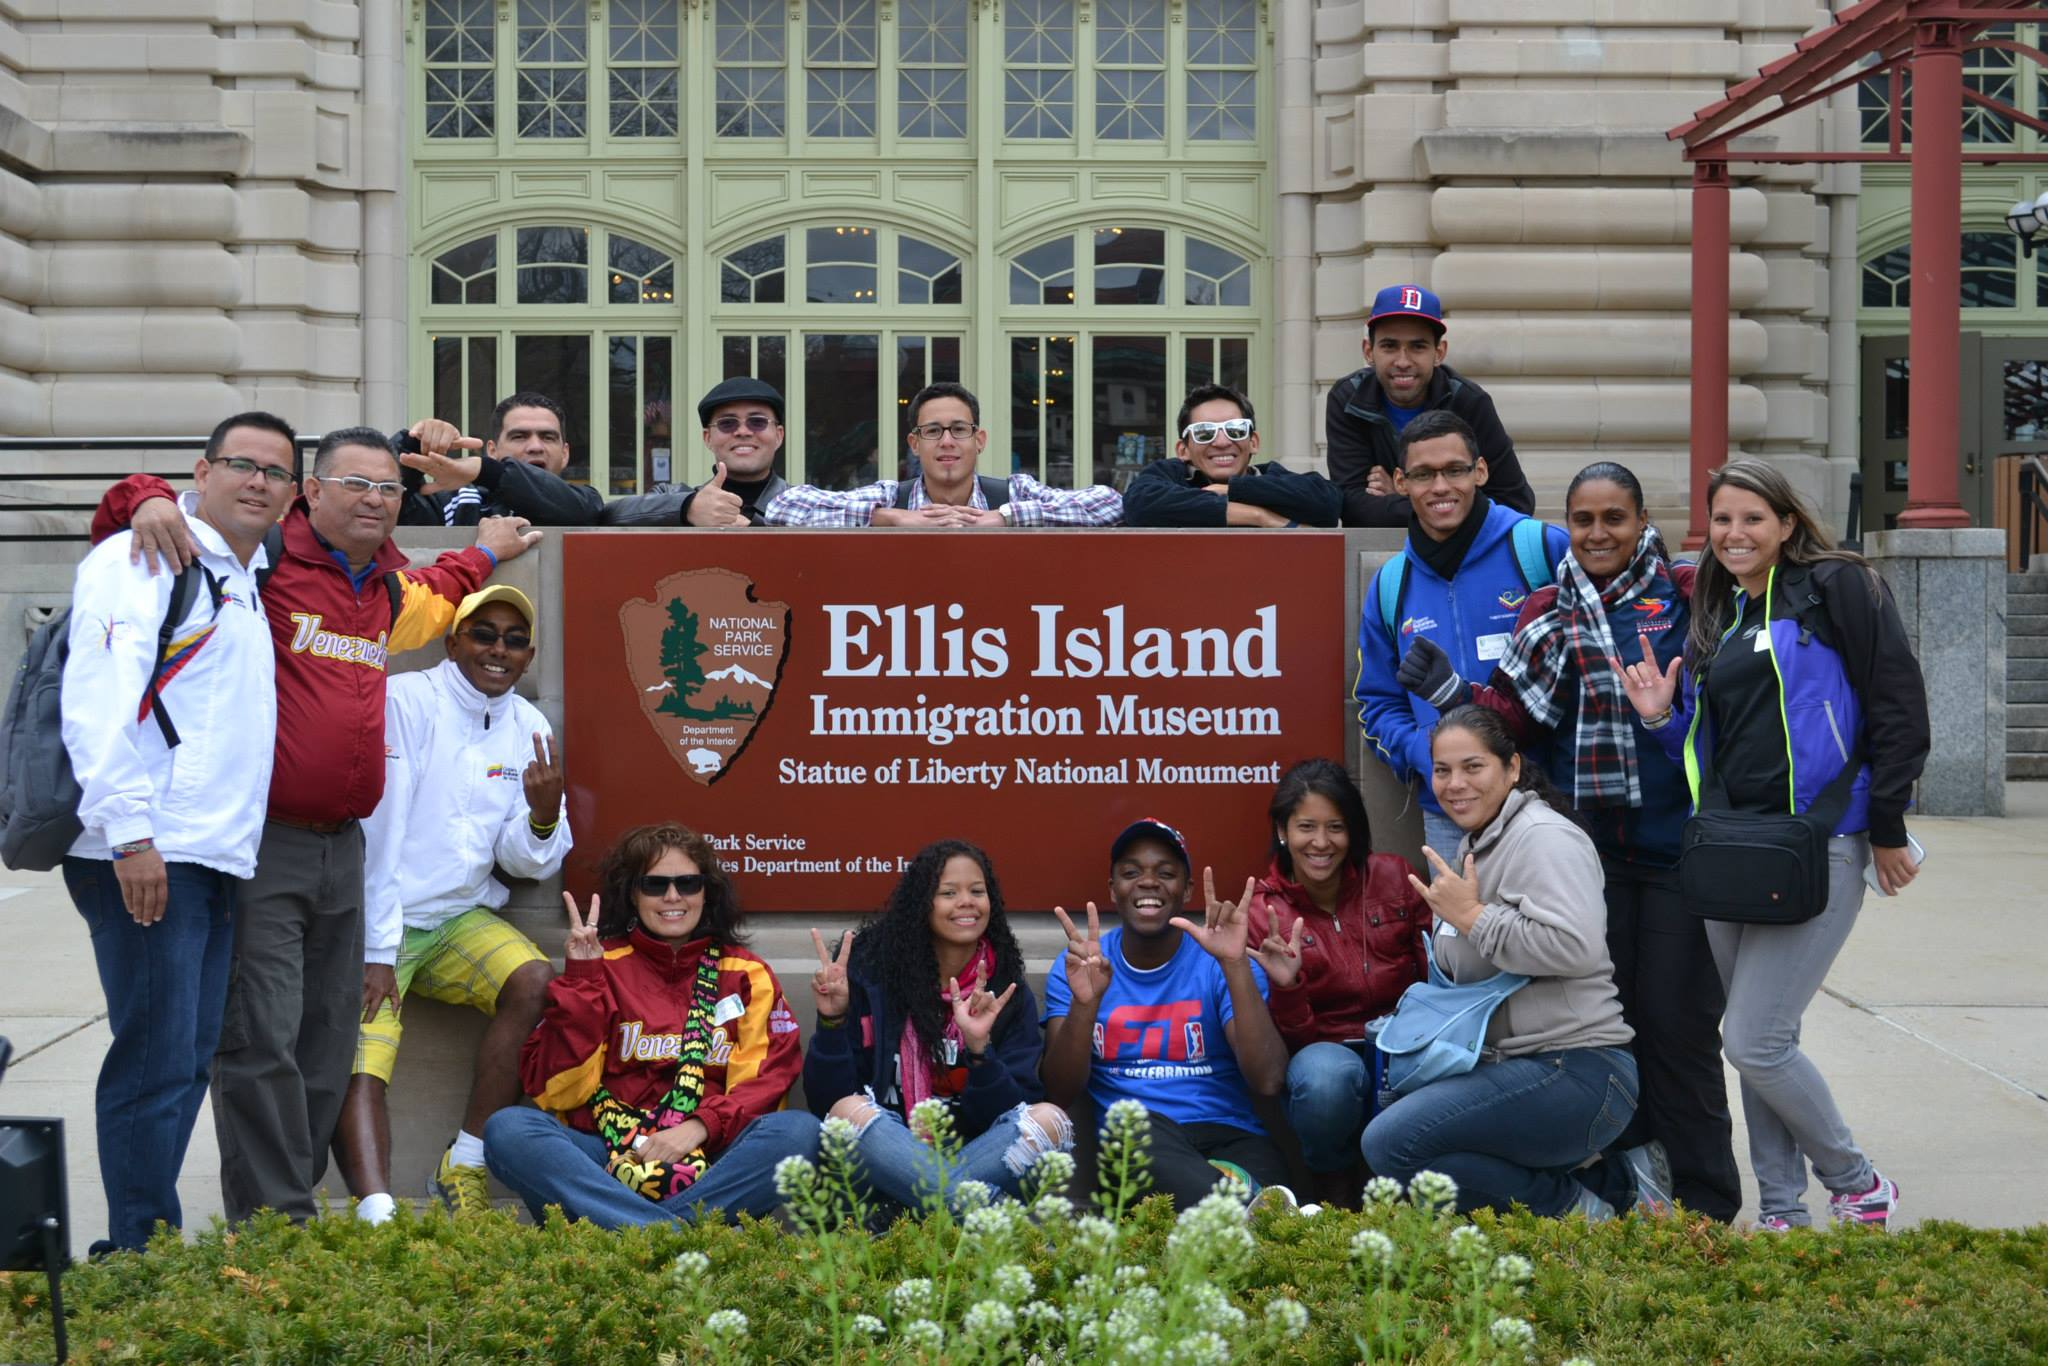 The sports visitors pose around the sign at Ellis Island, NY